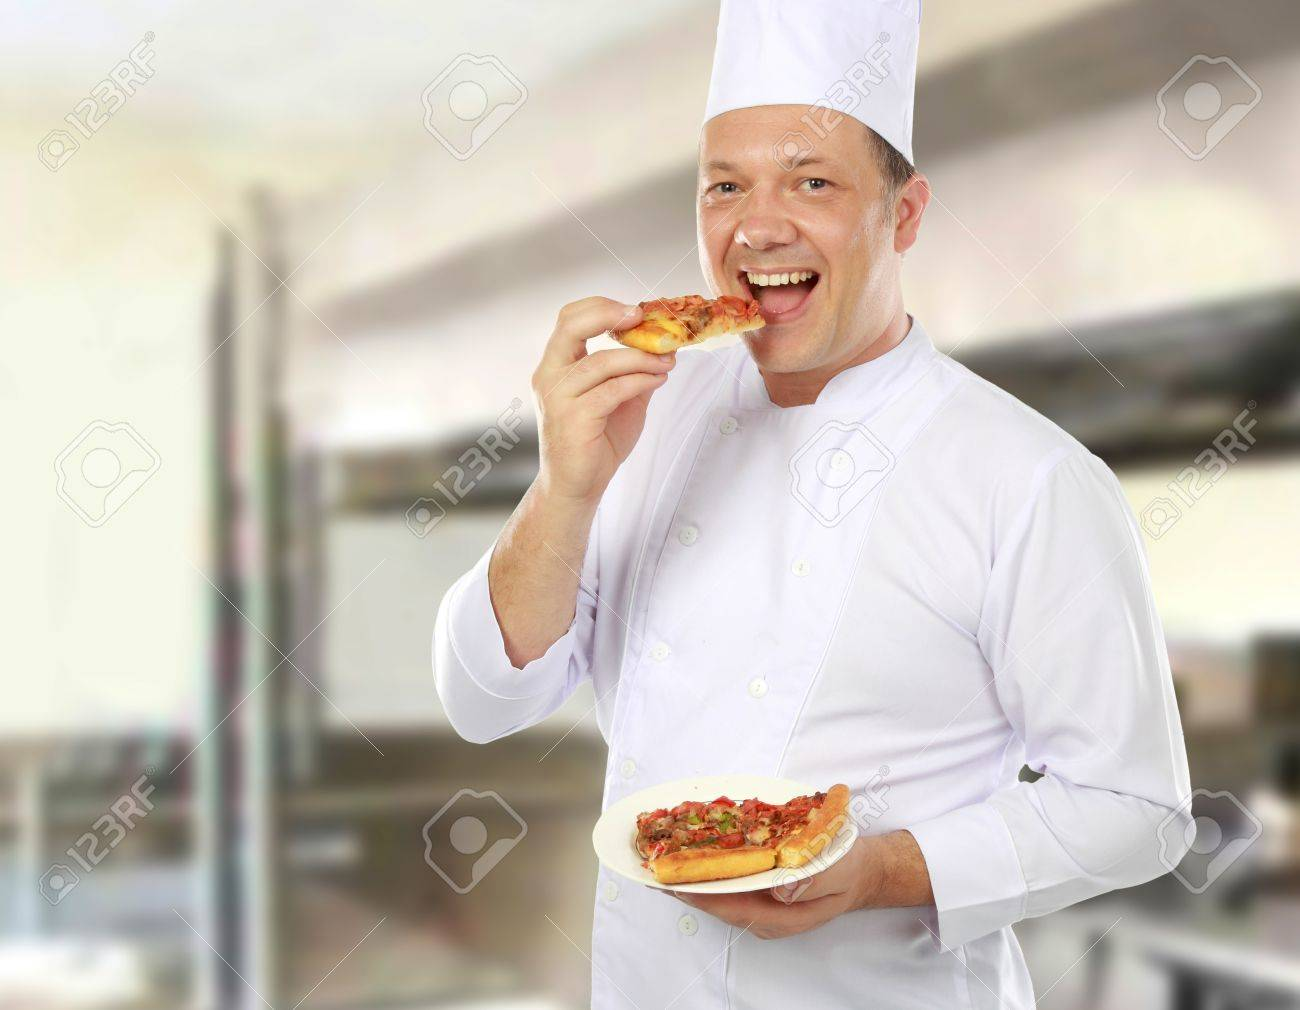 Chef Eating And Taste A Pizza Of His In The Kitchen Stock Photo ...